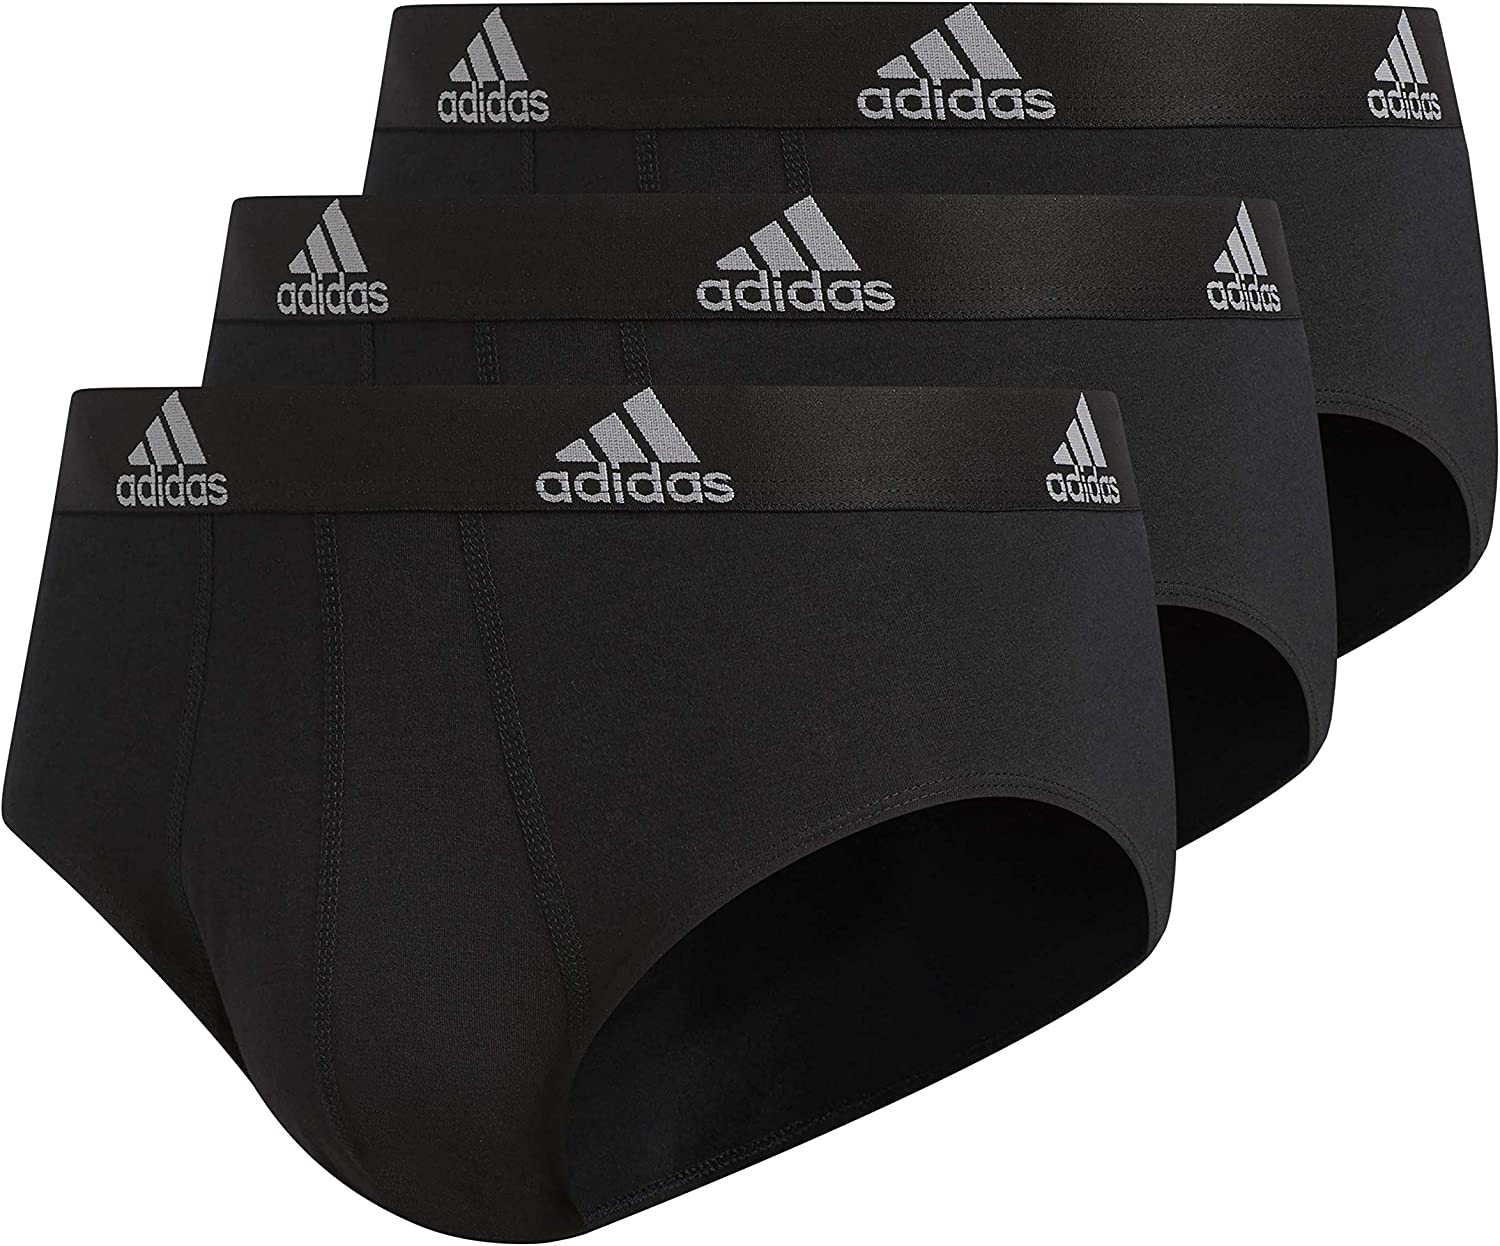 adidas Men's Stretch Cotton Brief Underwear (3-Pack): Clothing